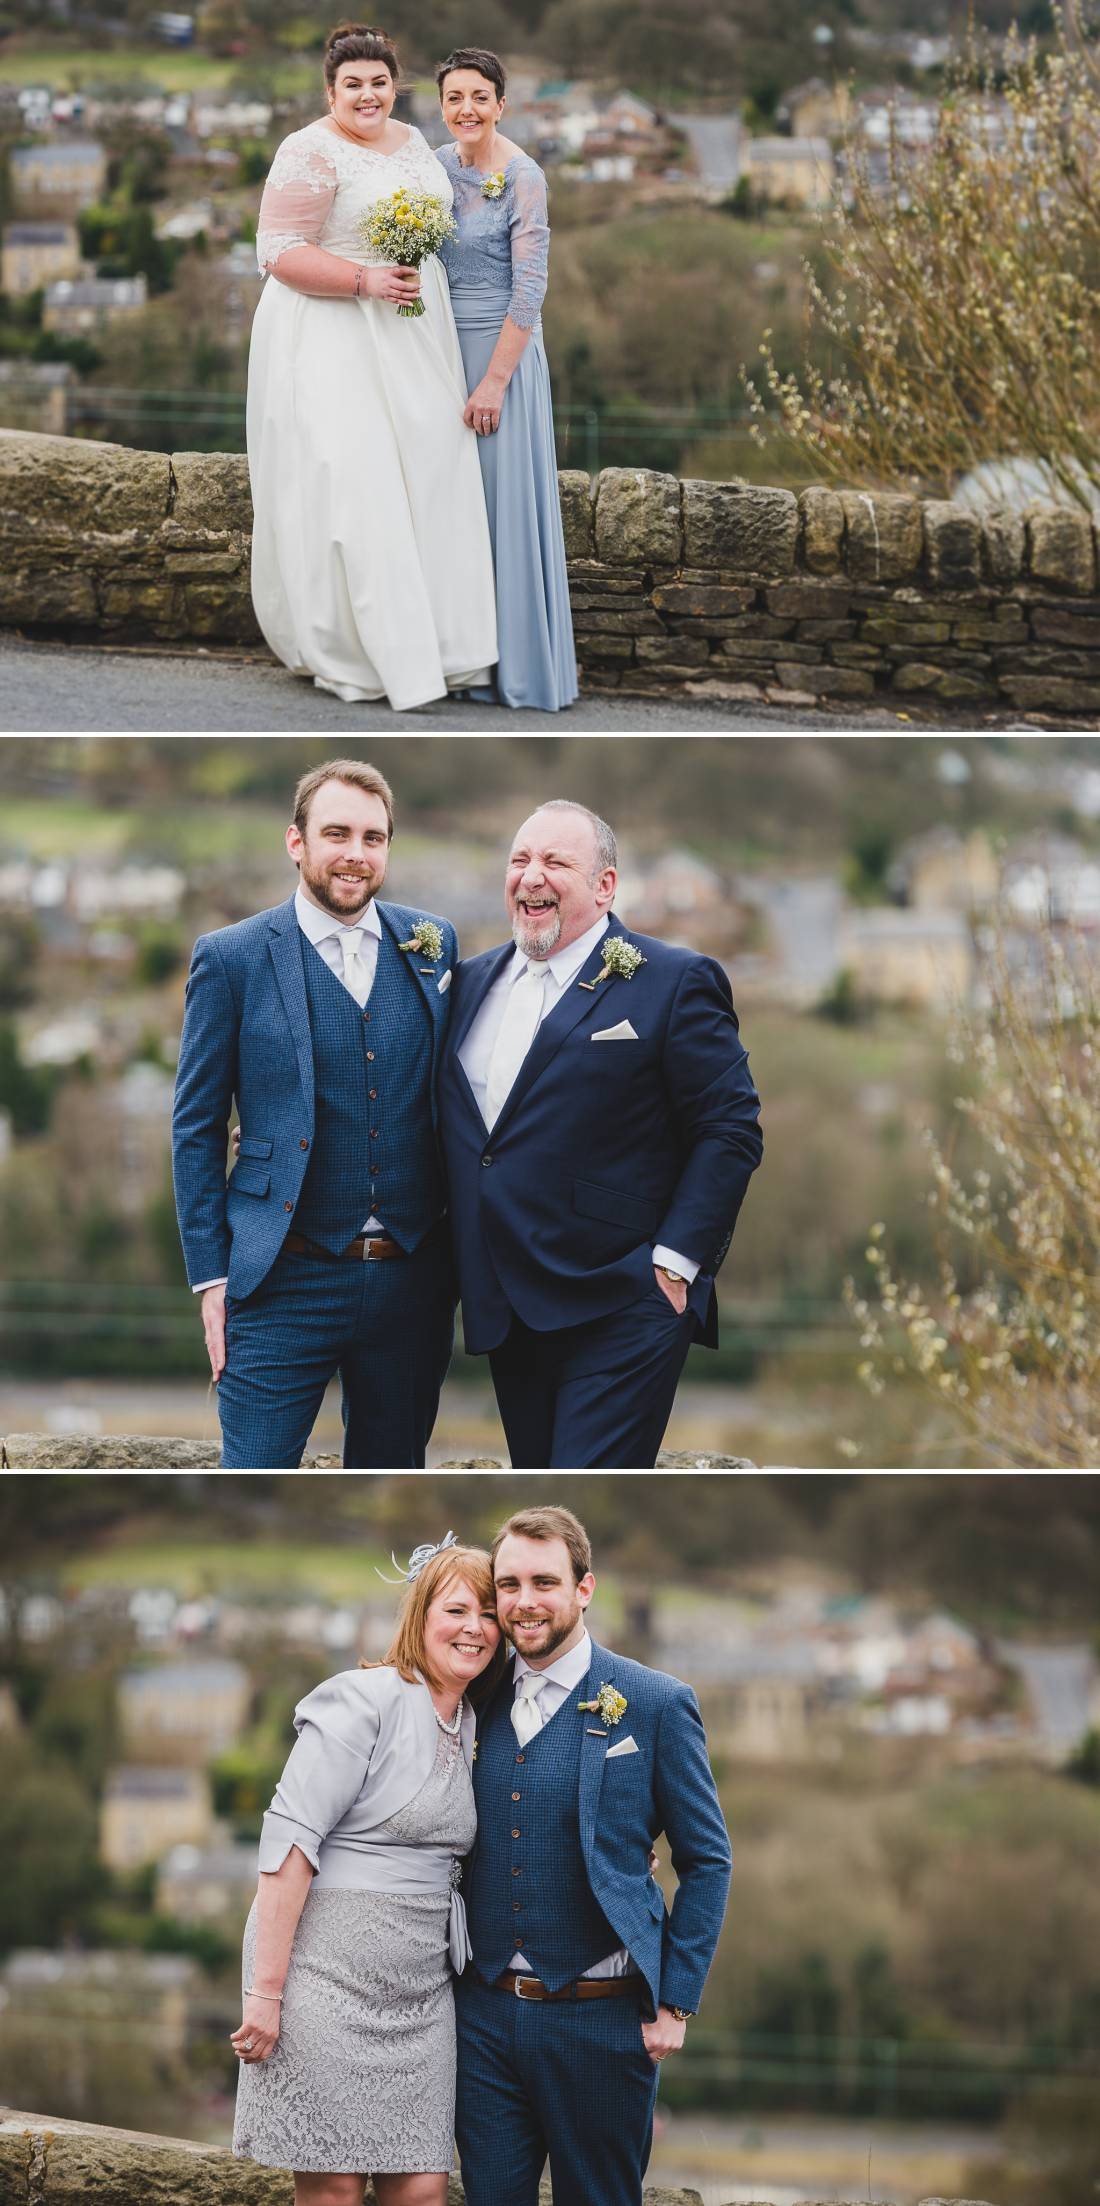 The New Hobbit Wedding - Jenny and Tim